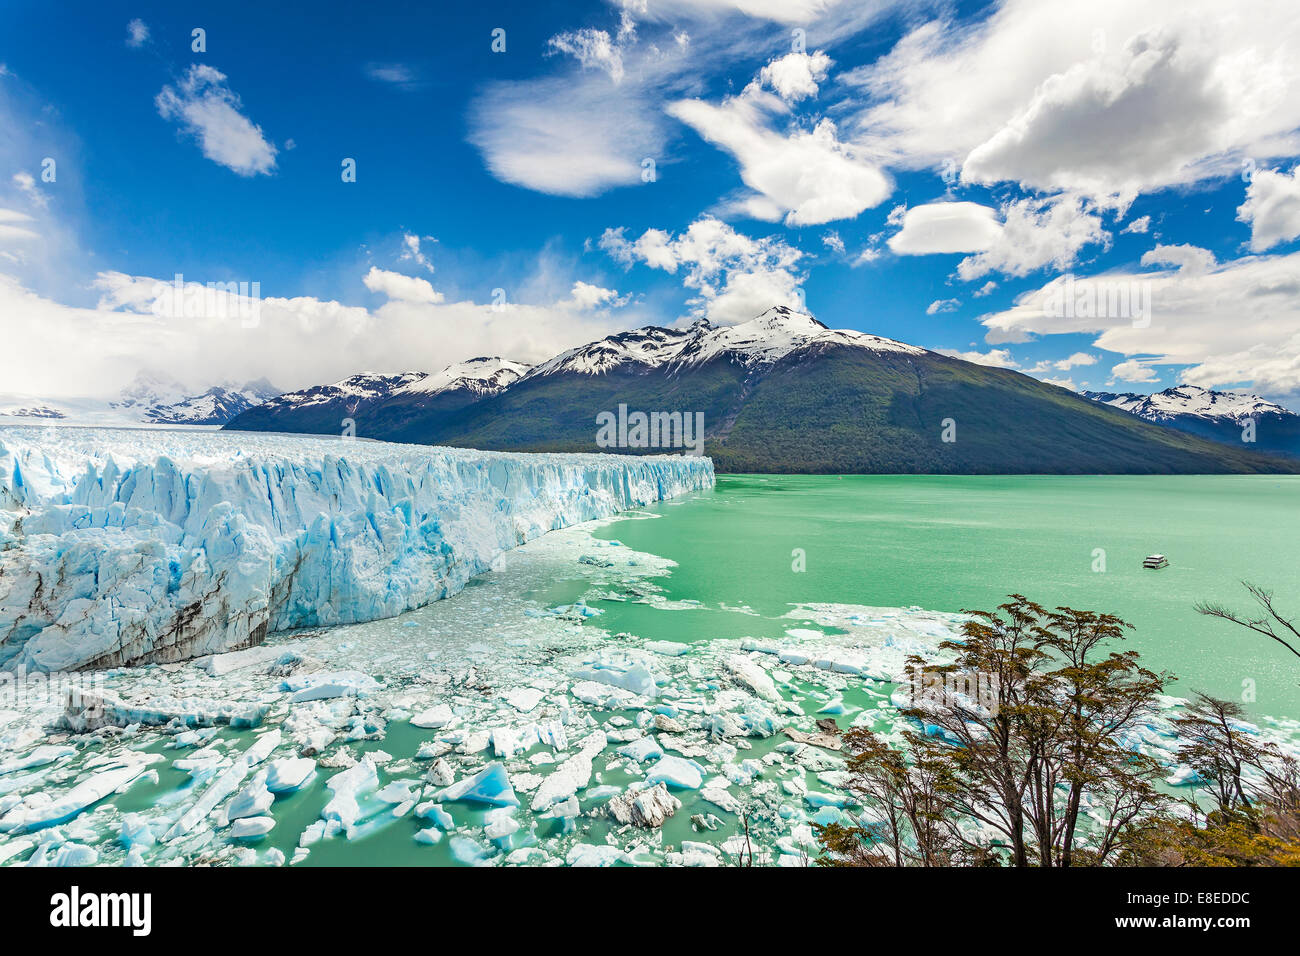 Perito Moreno Glacier in the Los Glaciares National Park, Argentina. - Stock Image